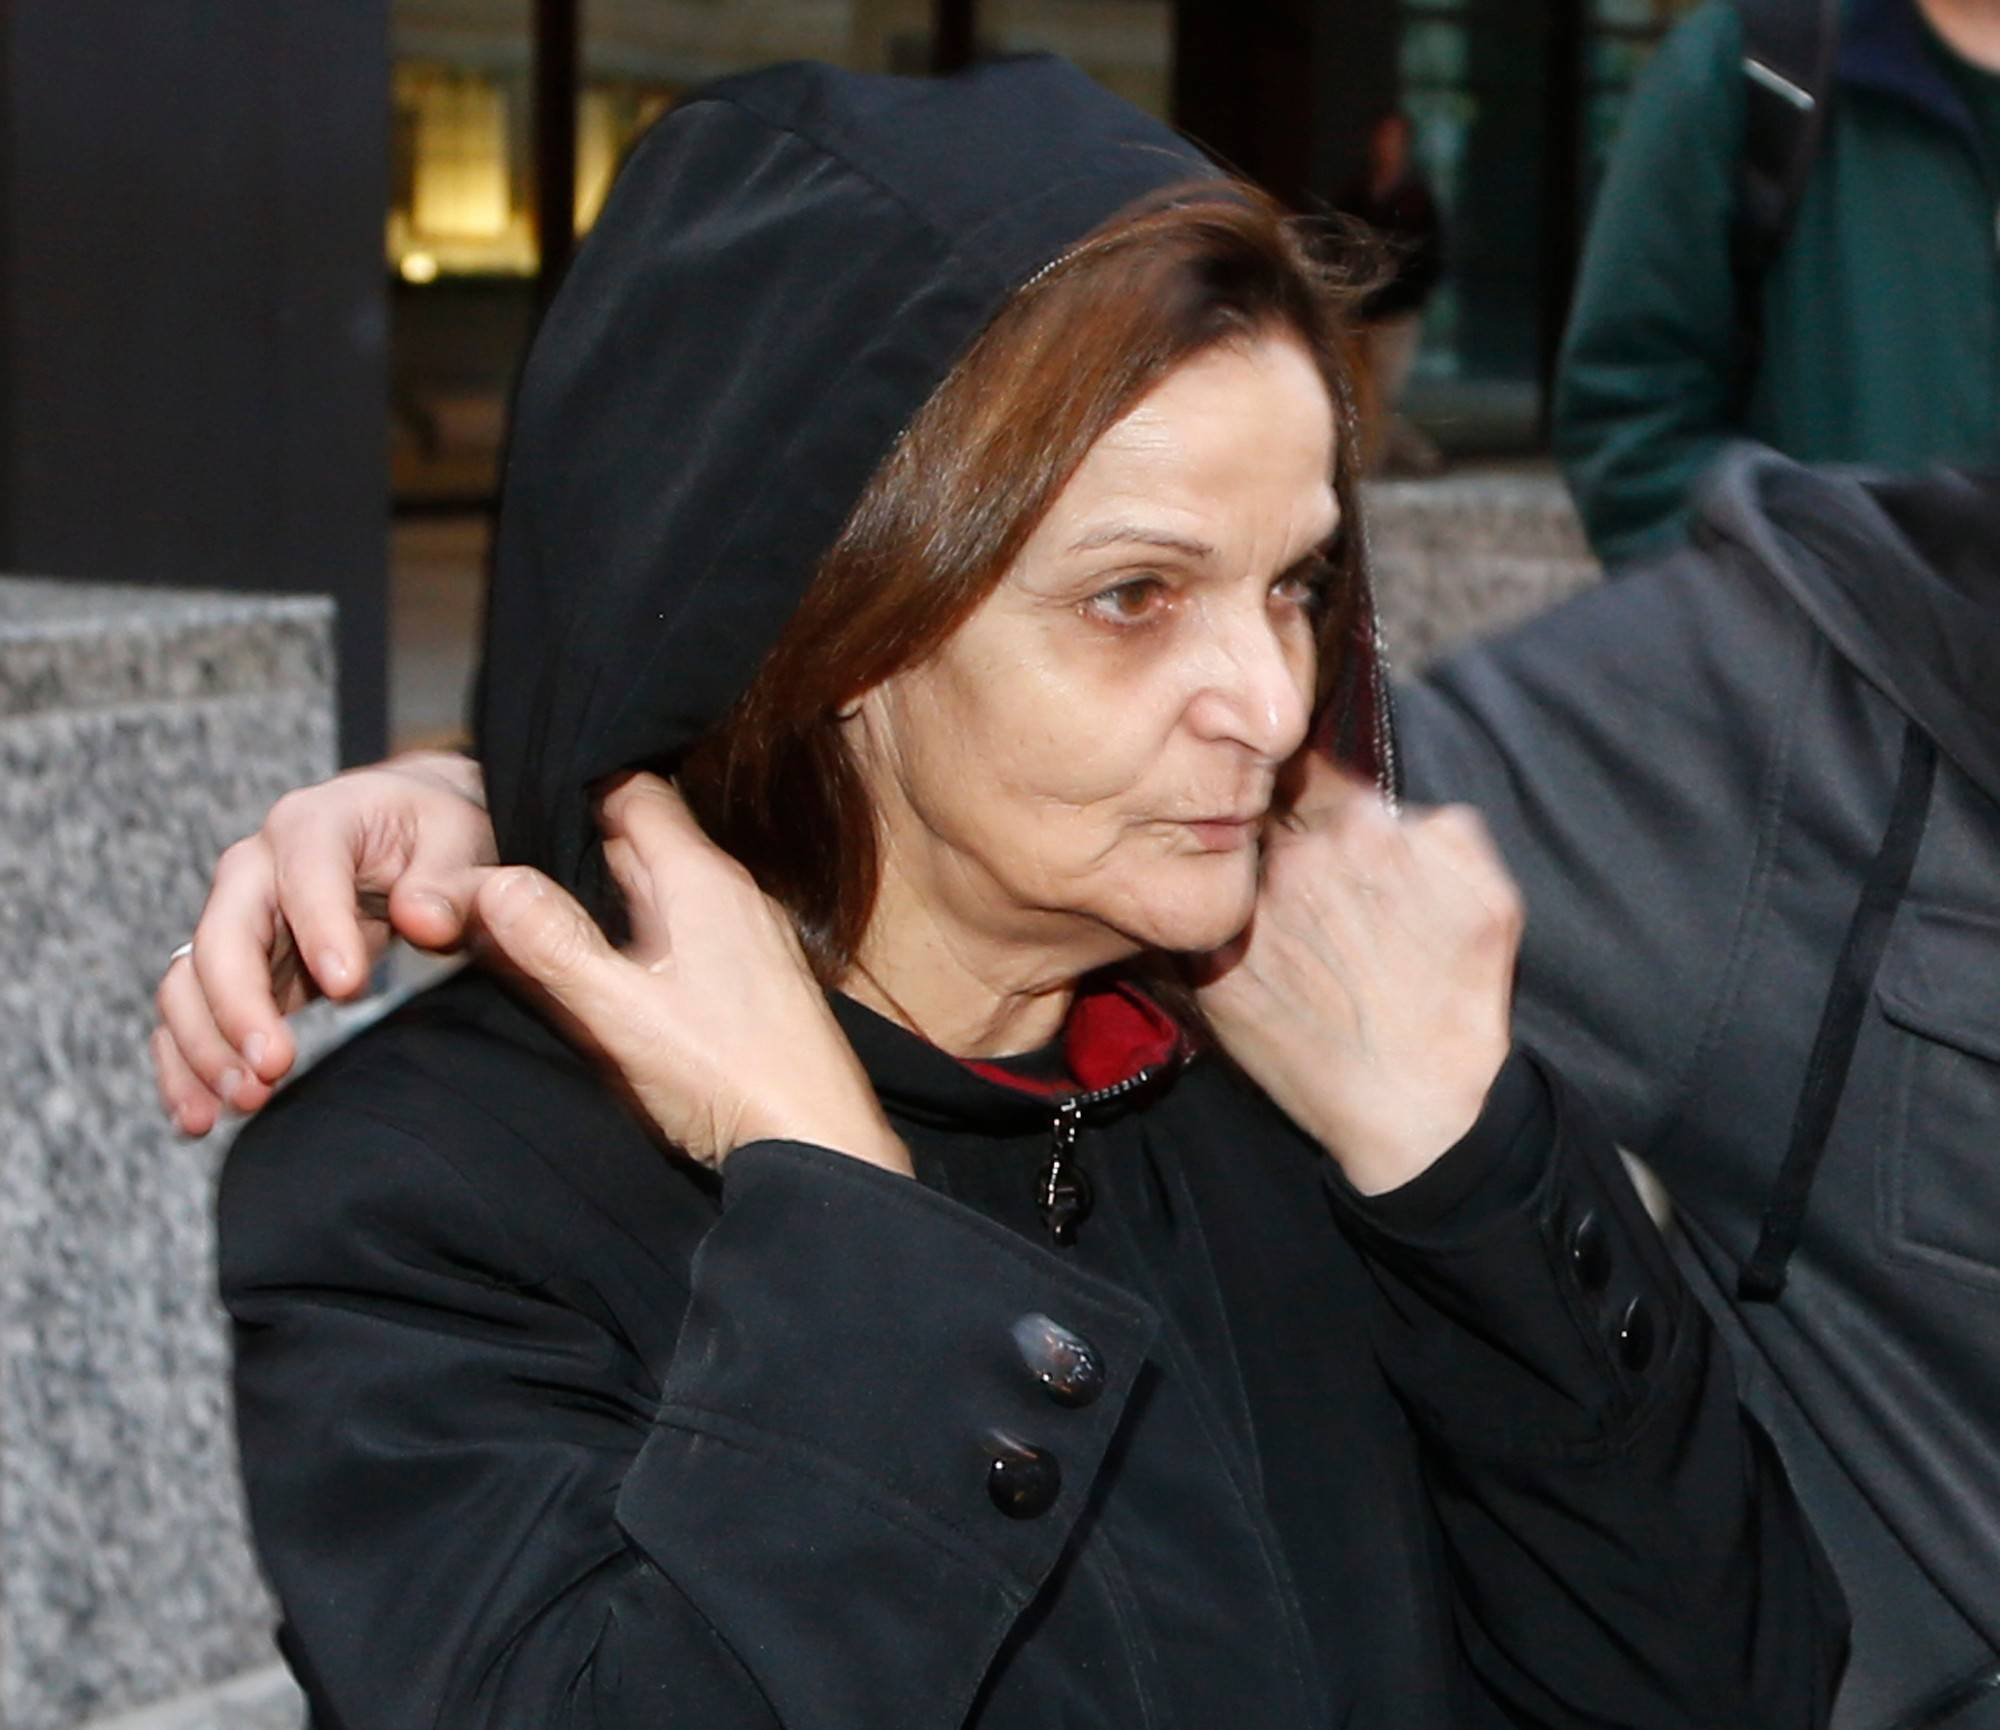 Rasmieh Yousef Odeh, associate director at the Arab American Action Network in Chicago, is accused of lying on citizenship papers about her conviction for a deadly bombing more than 40 years ago in Israel.